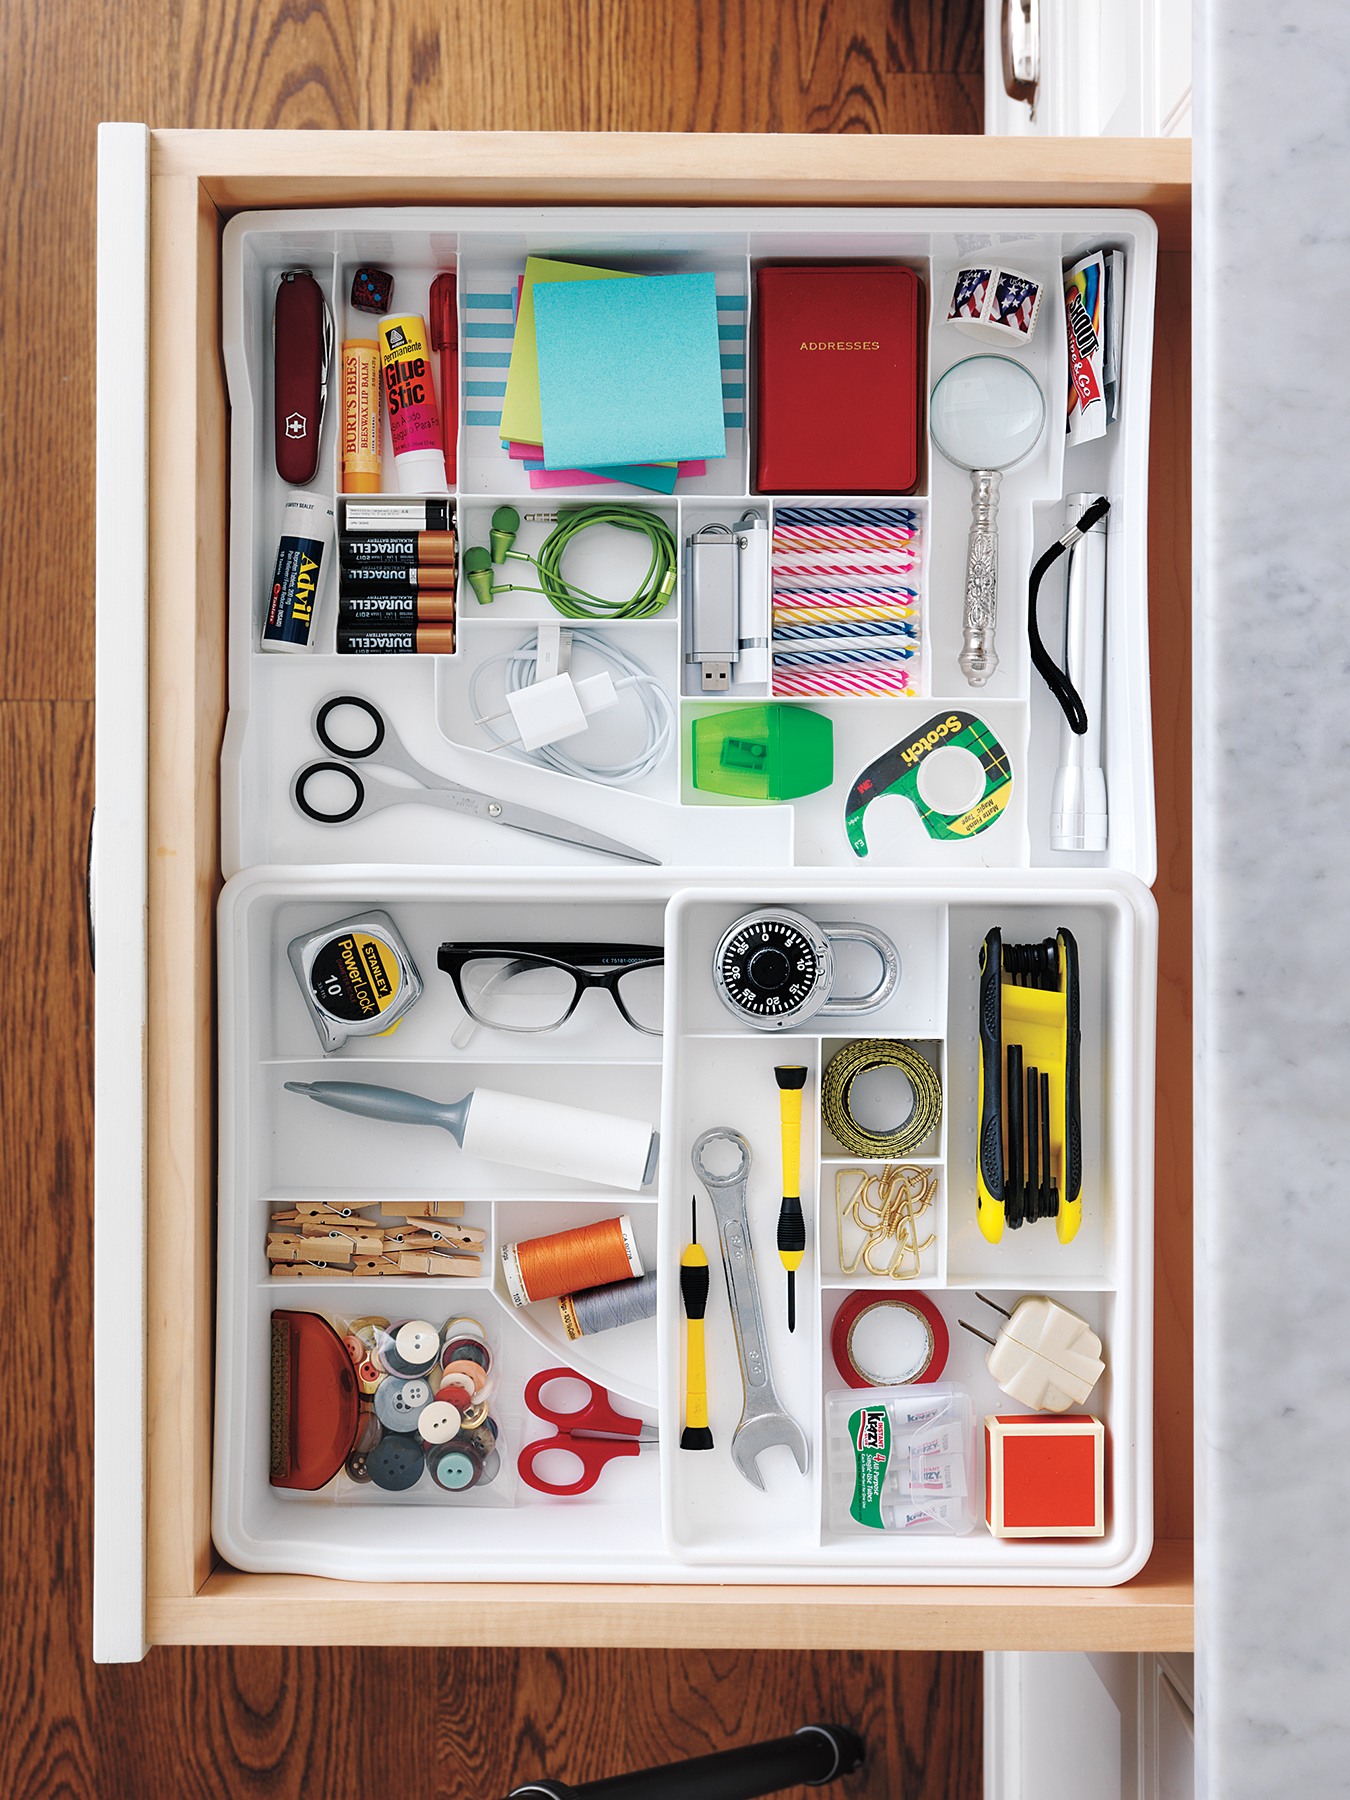 7 Brilliant Ways to Conquer Clutter